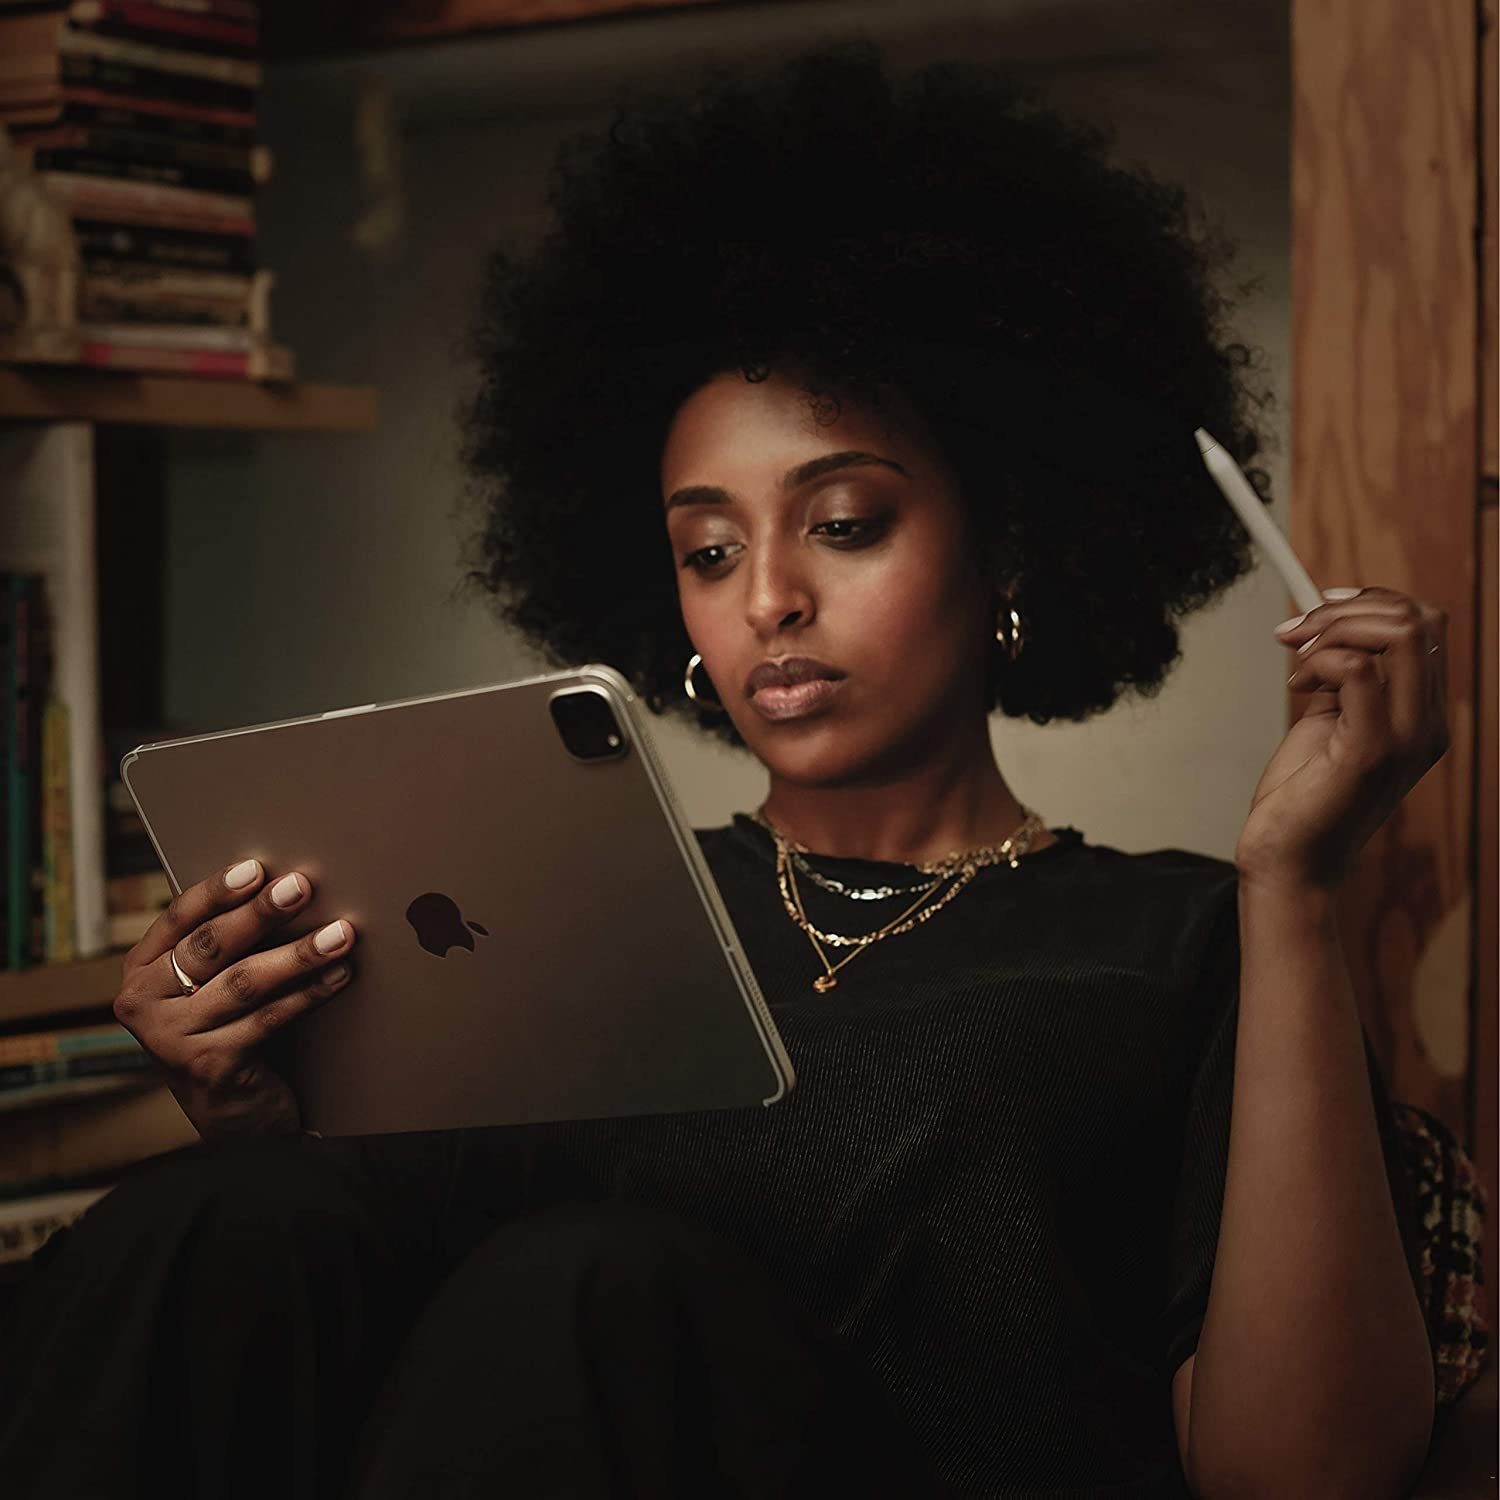 a model using the apple pencil while holding an ipad